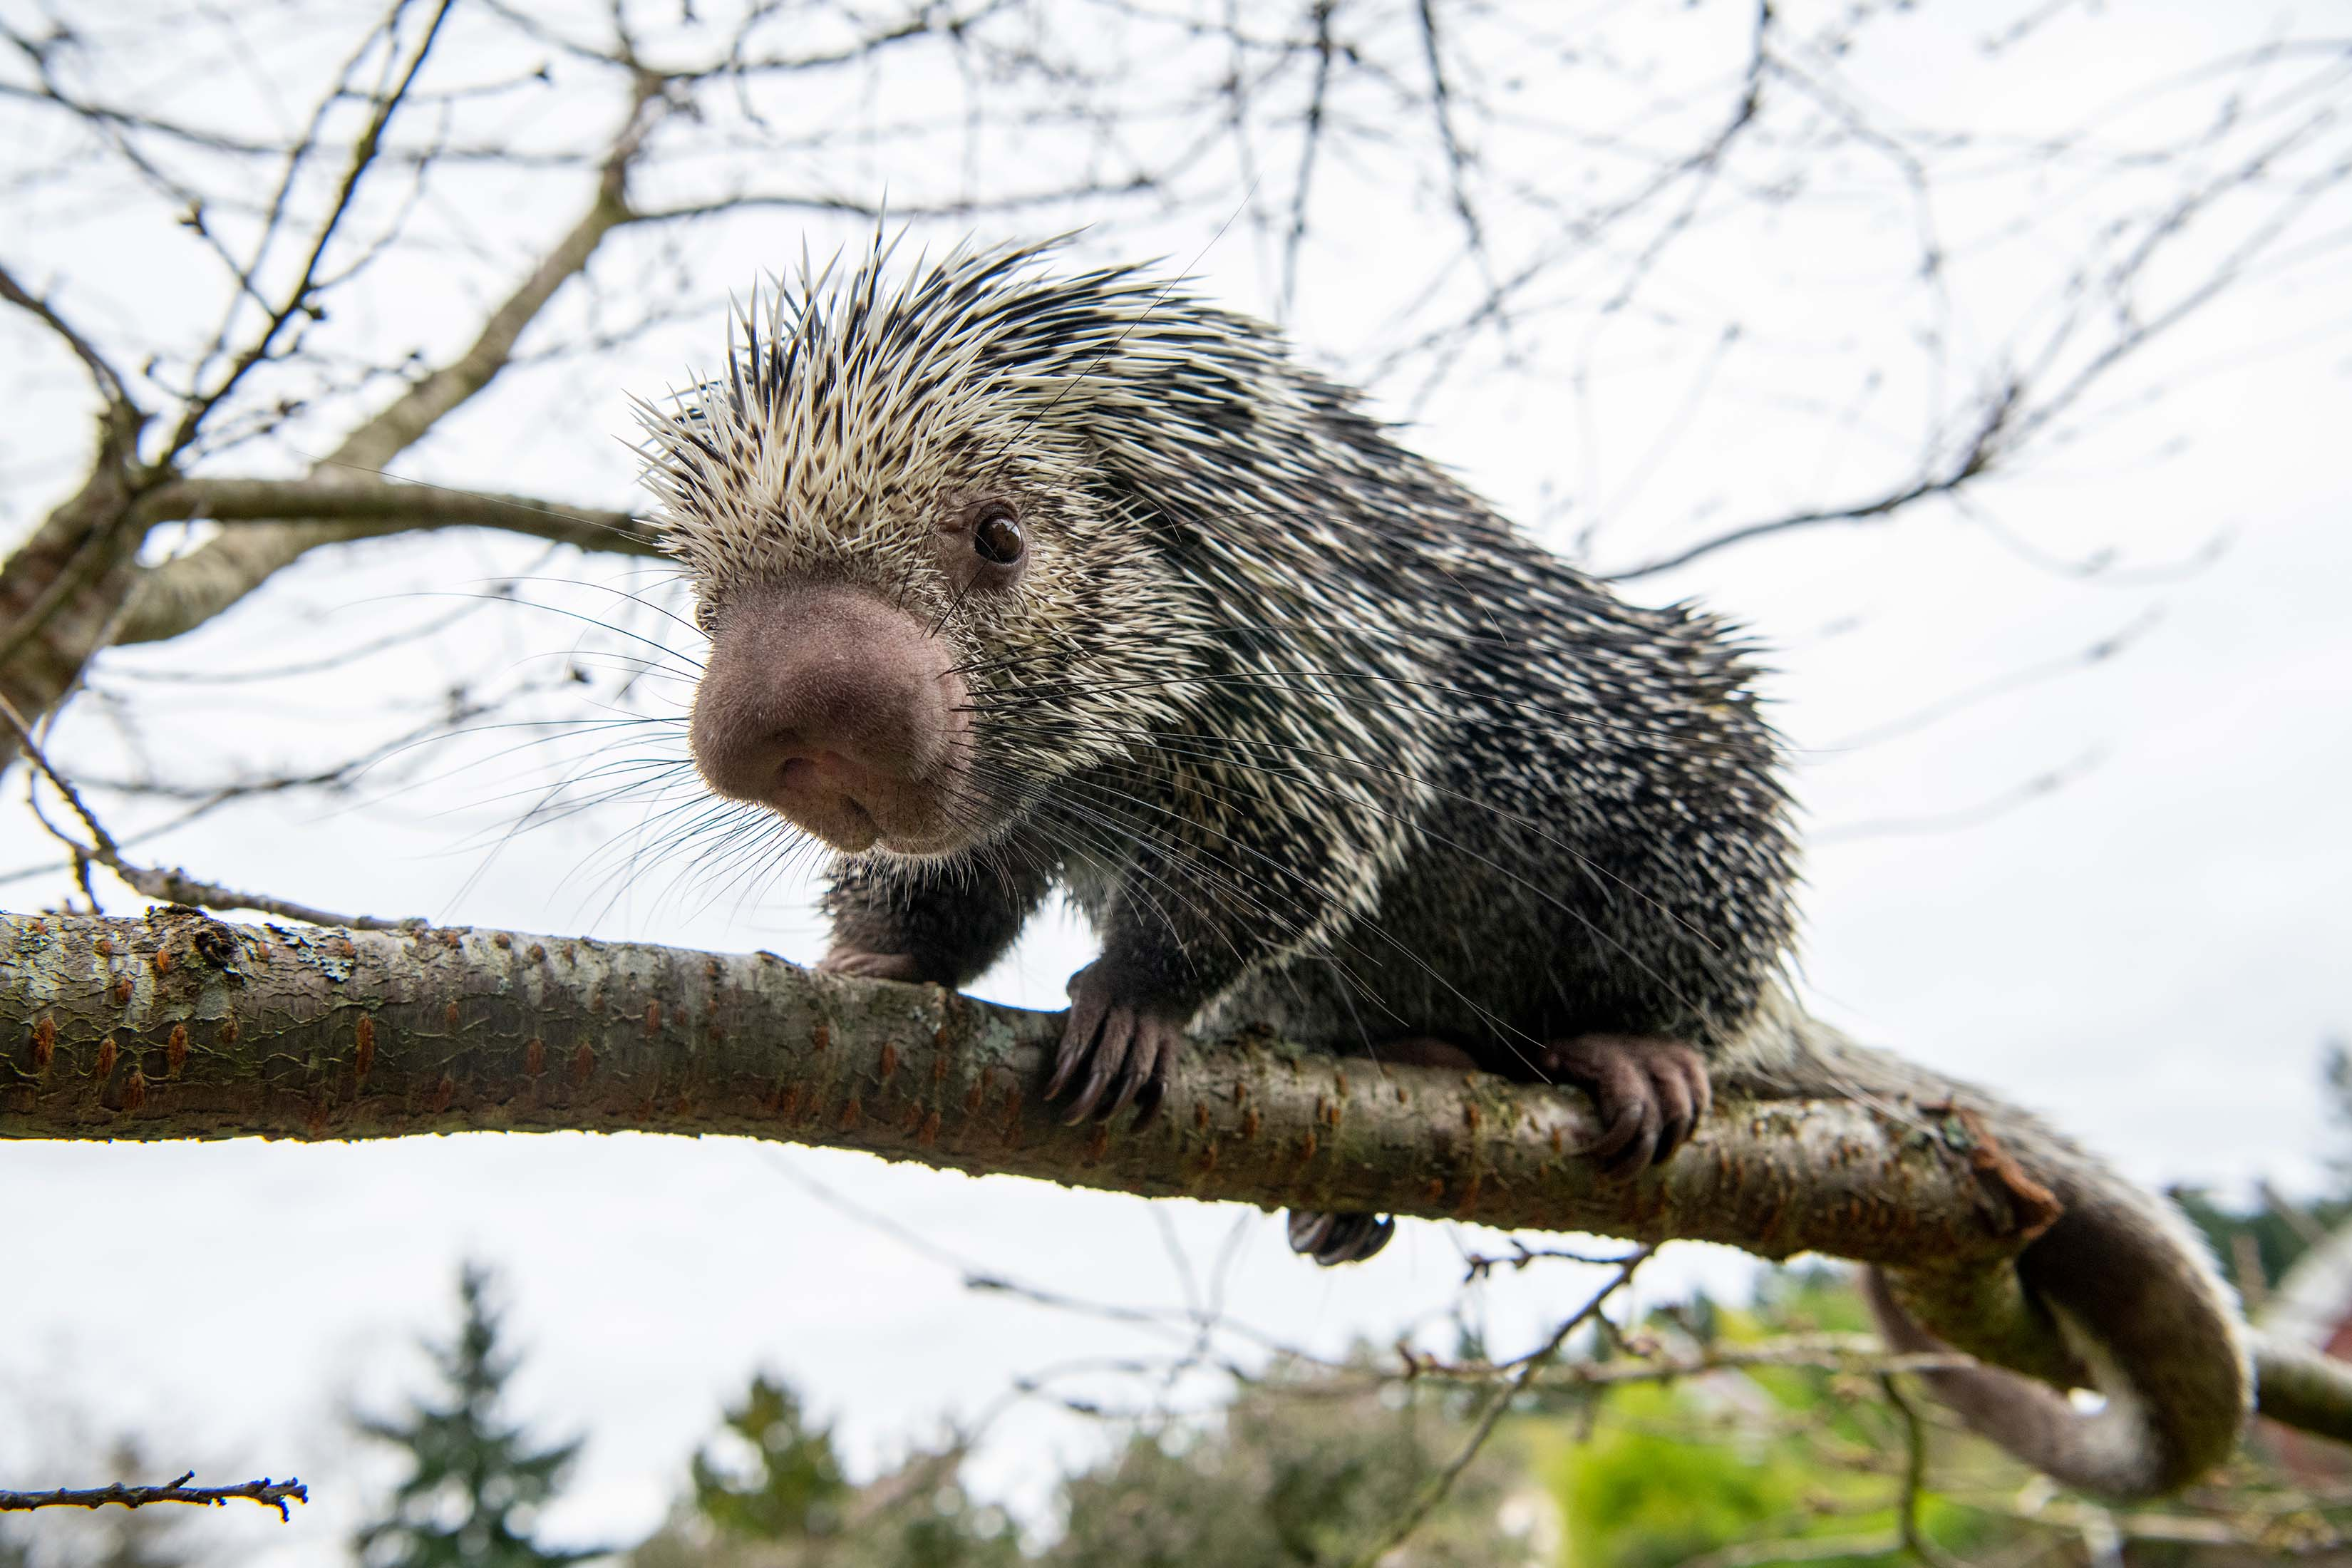 Prehensile-tailed porcupine on a tree branch